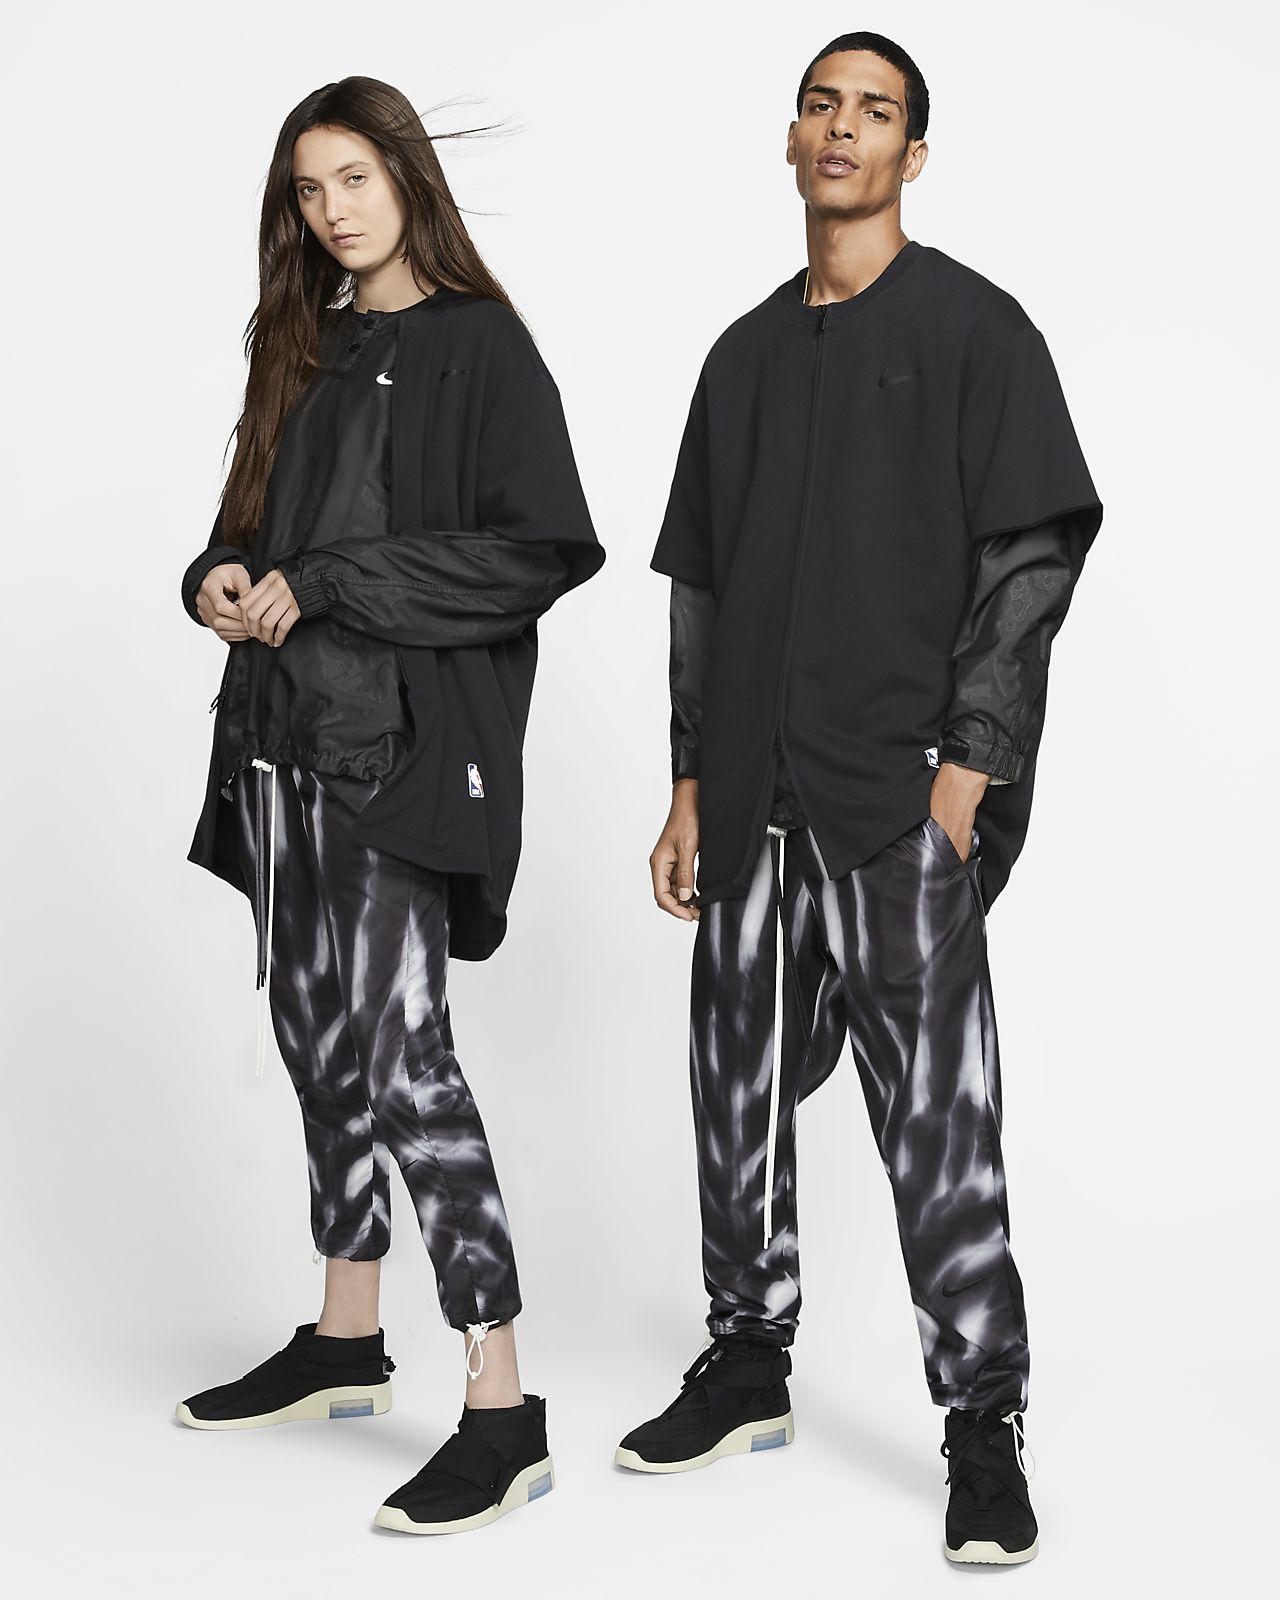 Pantaloni con stampa all-over Nike x Fear of God